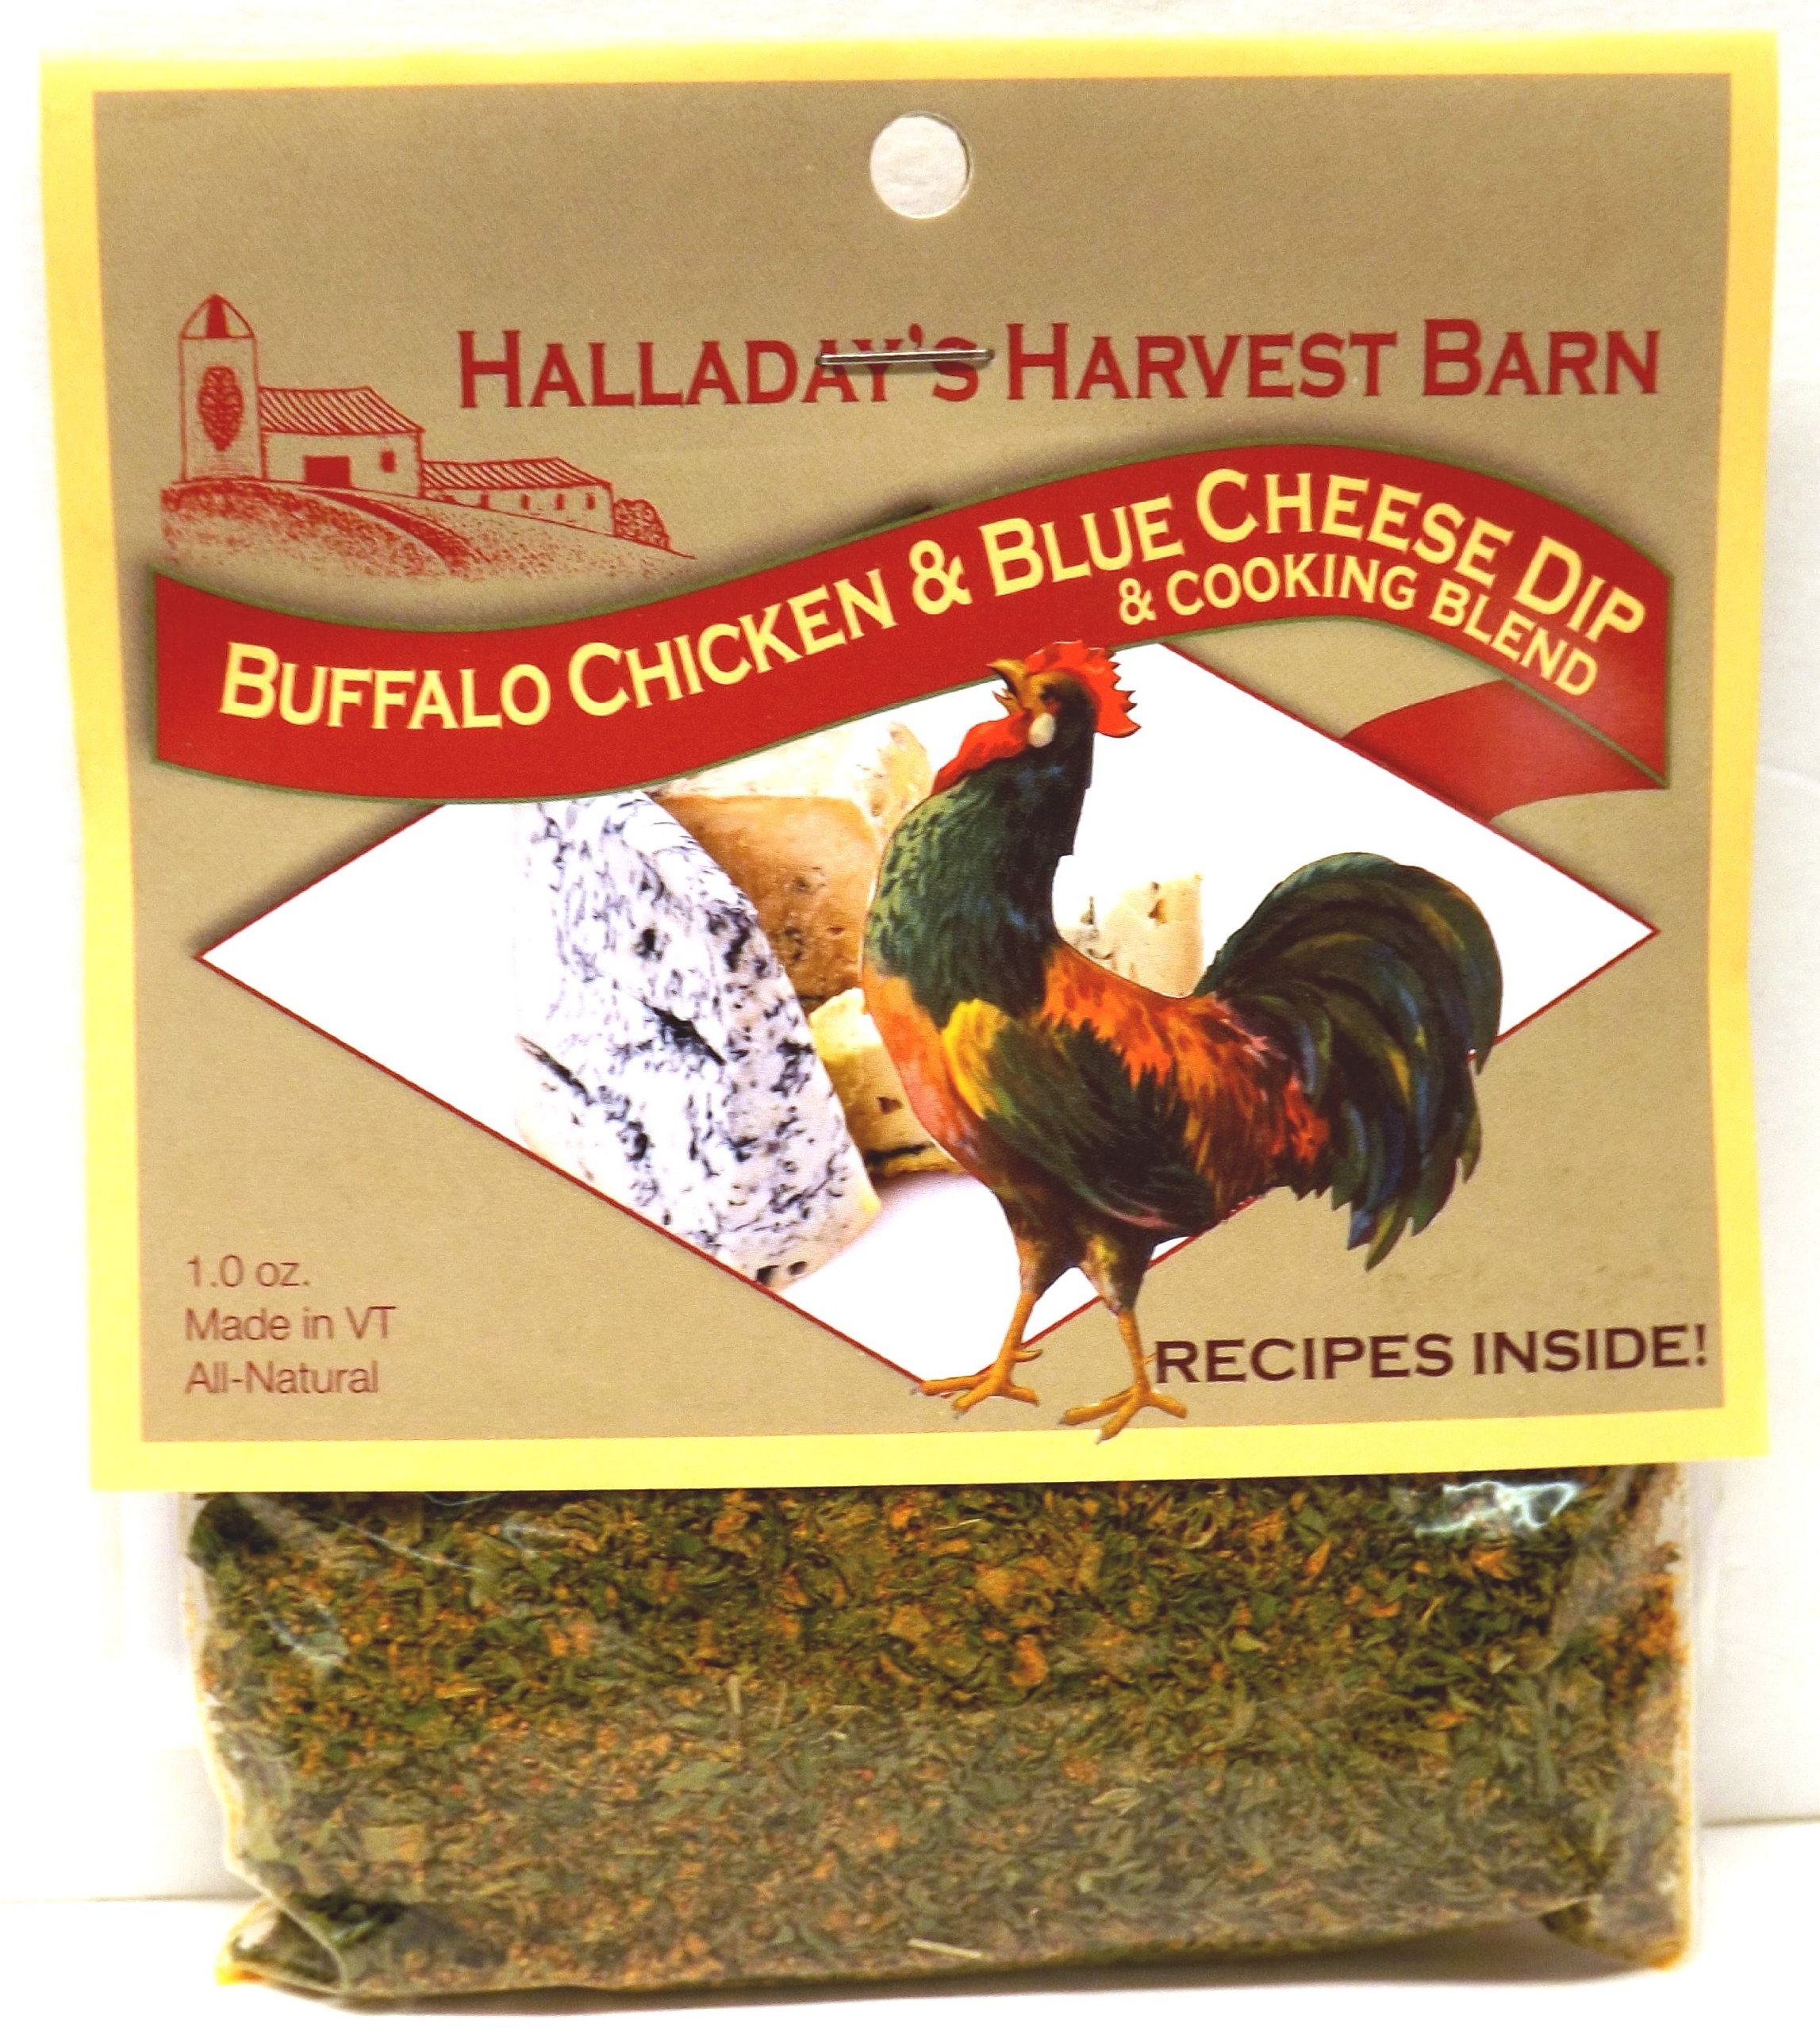 Halladay's Harvest Barn: Buffalo Chicken & Blue Cheese Dip & Cooking Blend (1 oz Bags) 3 Pack by Halladay's Vermont Harvest Barn